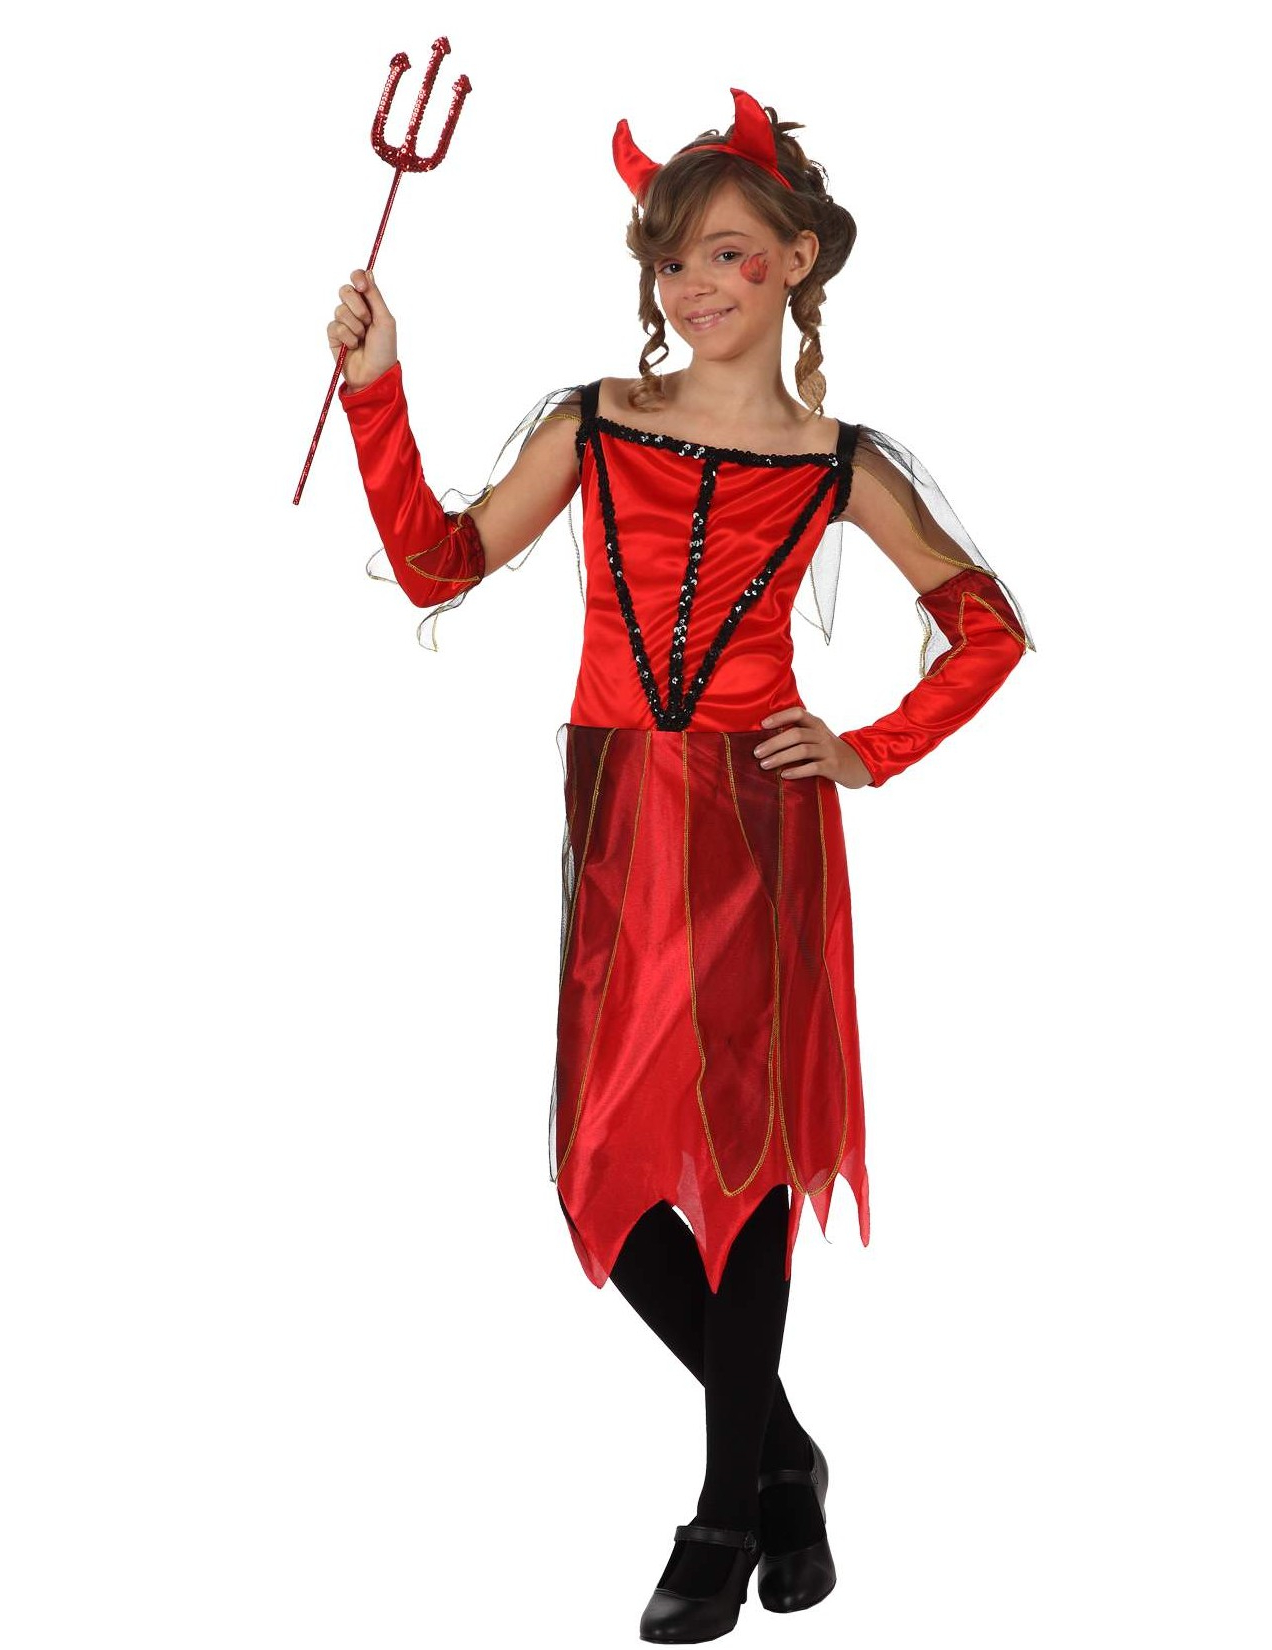 D guisement diablesse fille - Deguisement fille halloween ...